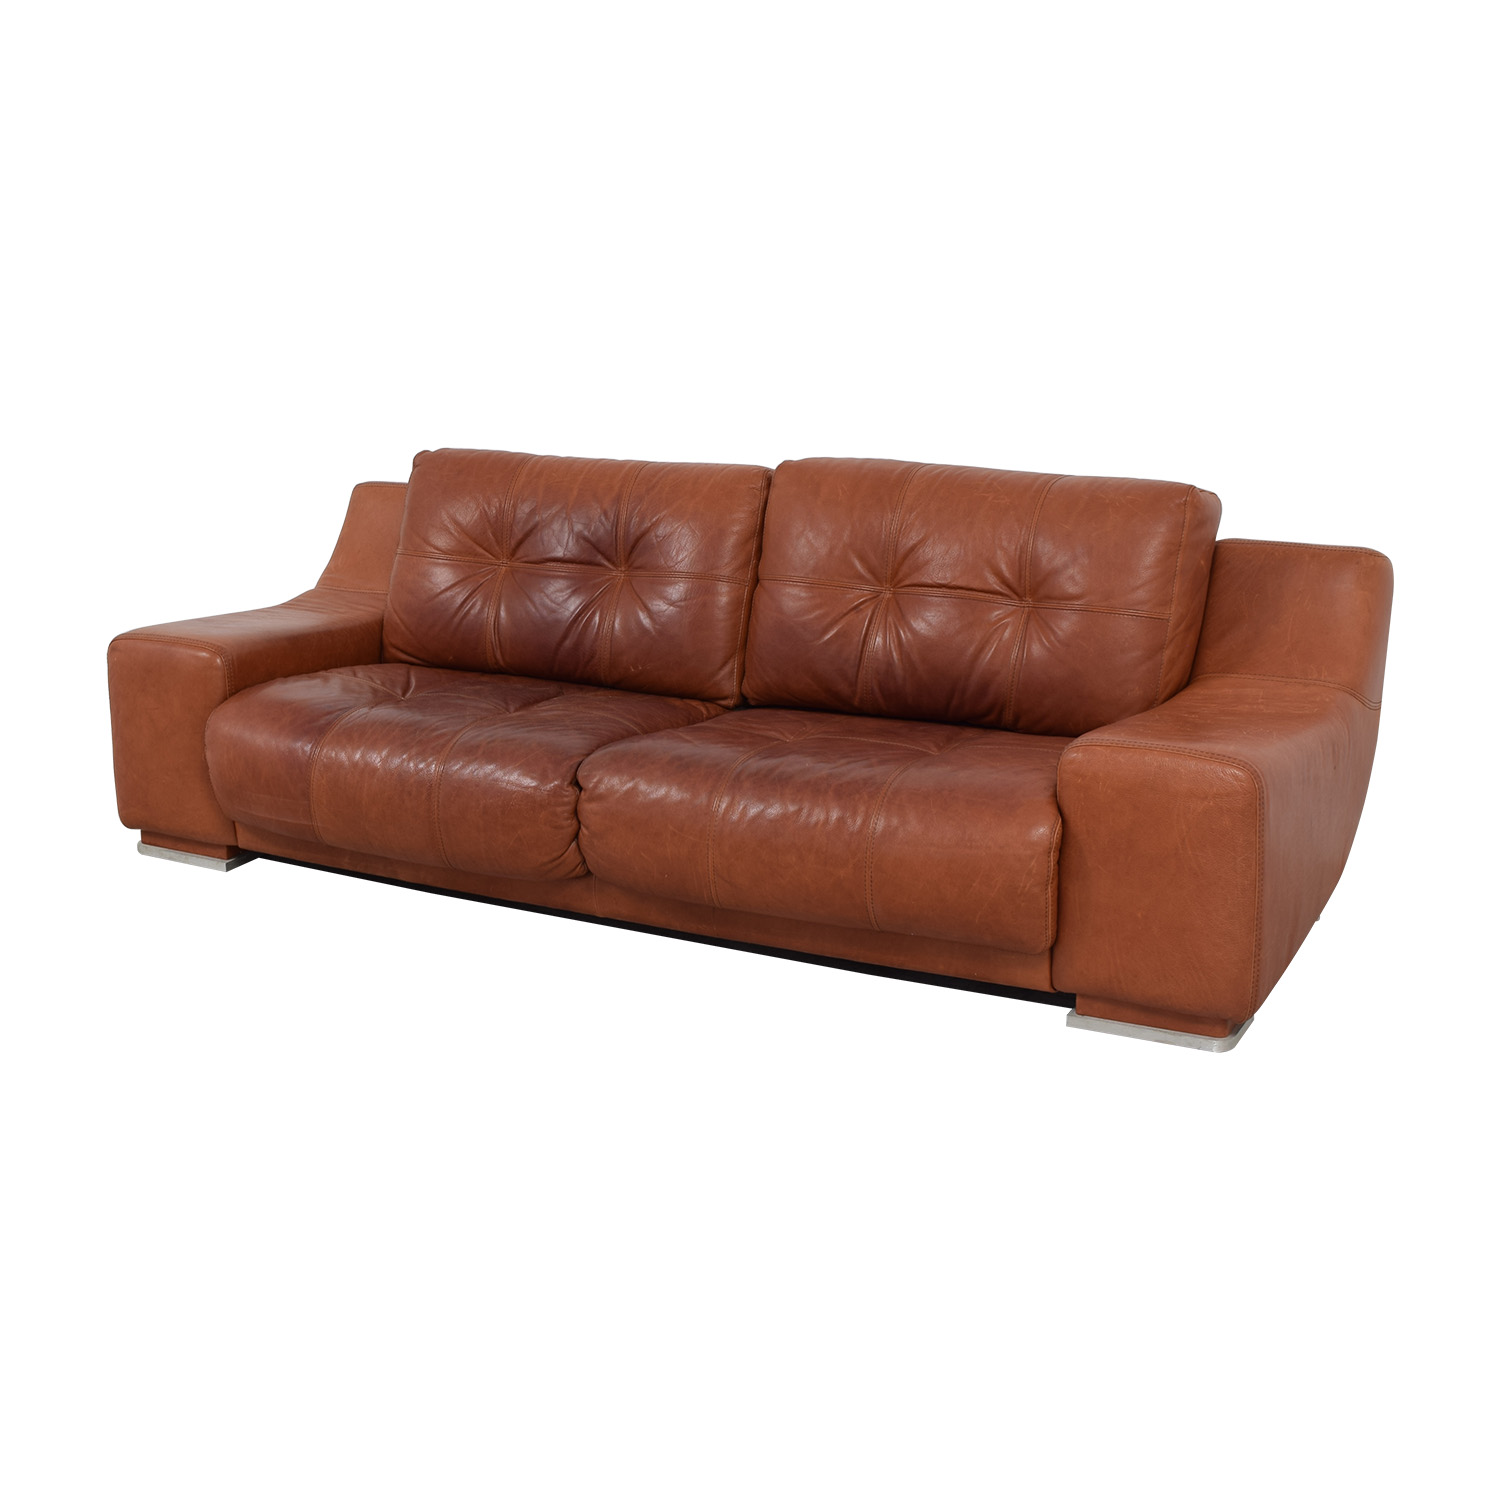 54 Off Contempo Contempo Leather Sofa Sofas